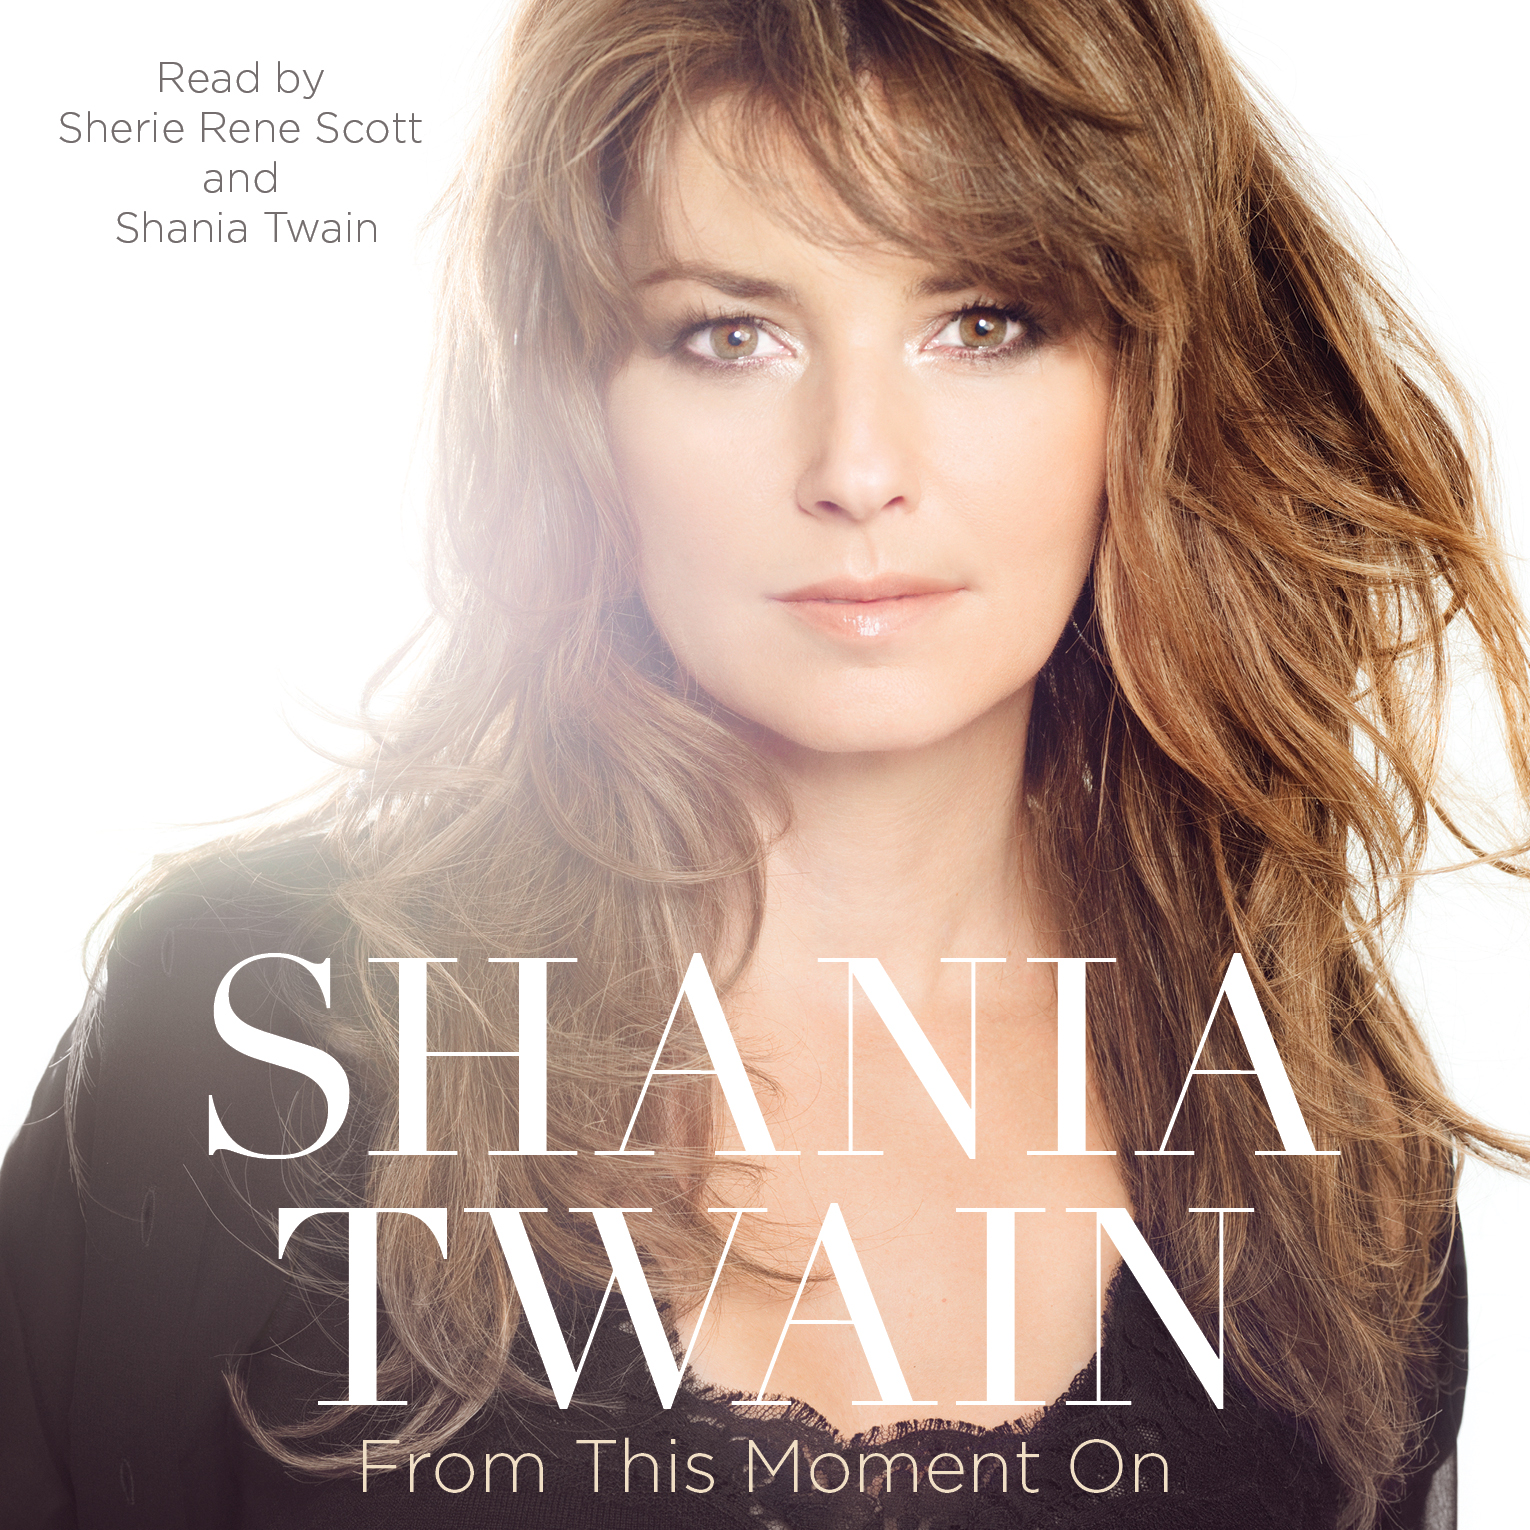 From this moment on audiobook by shania twain, sherie rene scott.